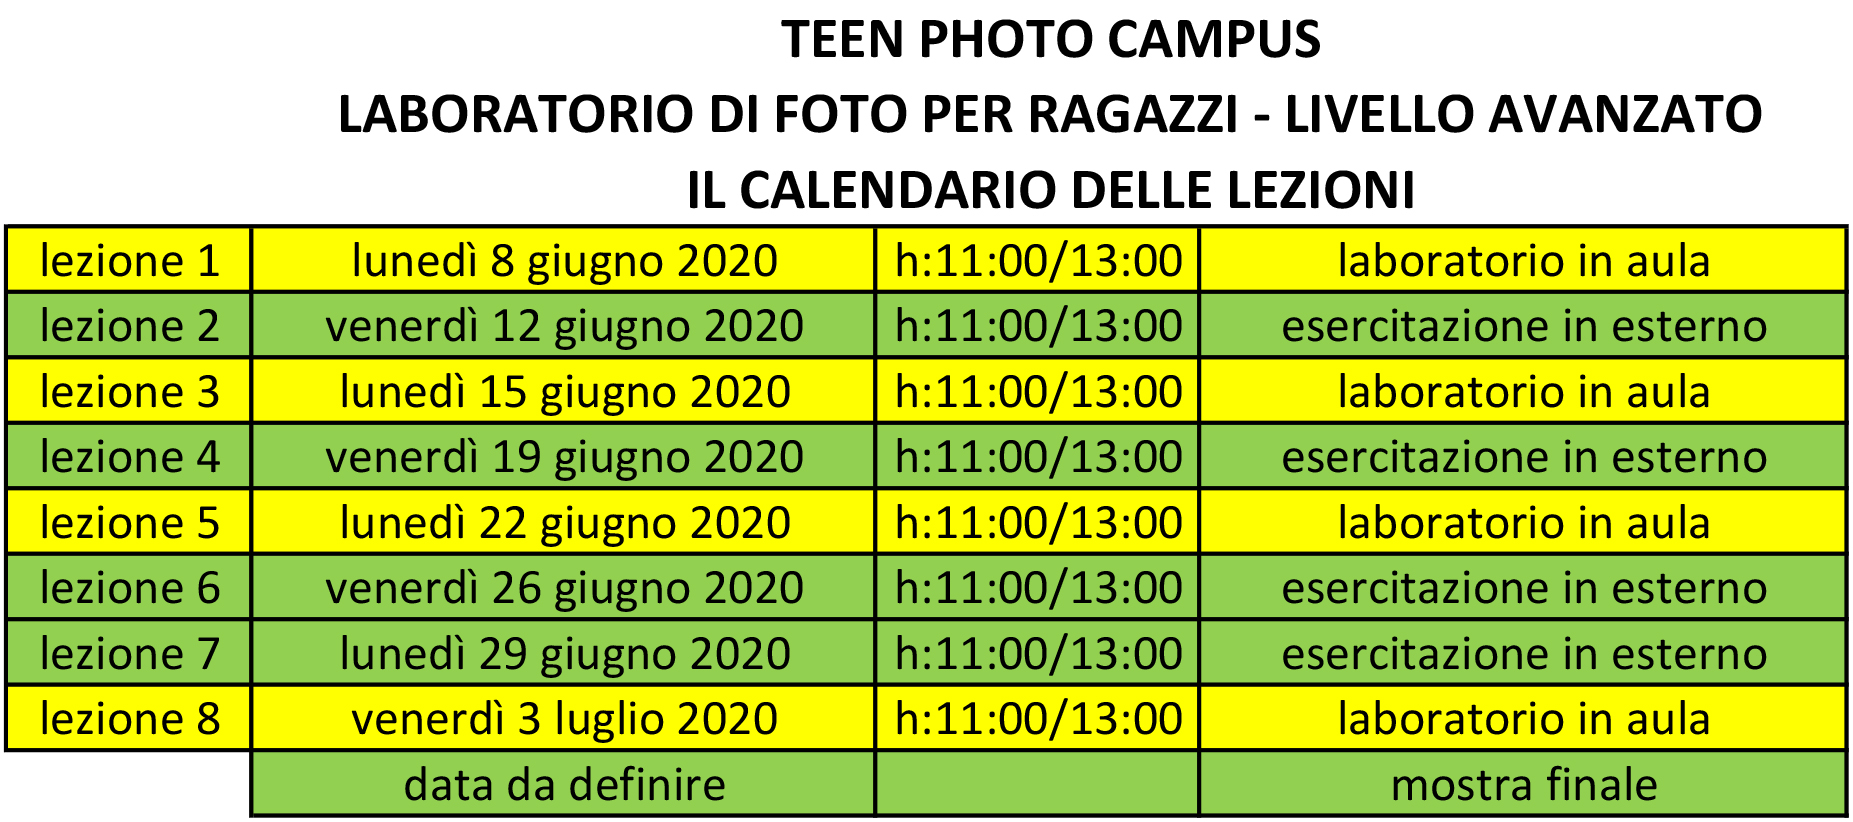 Teen Photo Campus - il calendario con le lezioni